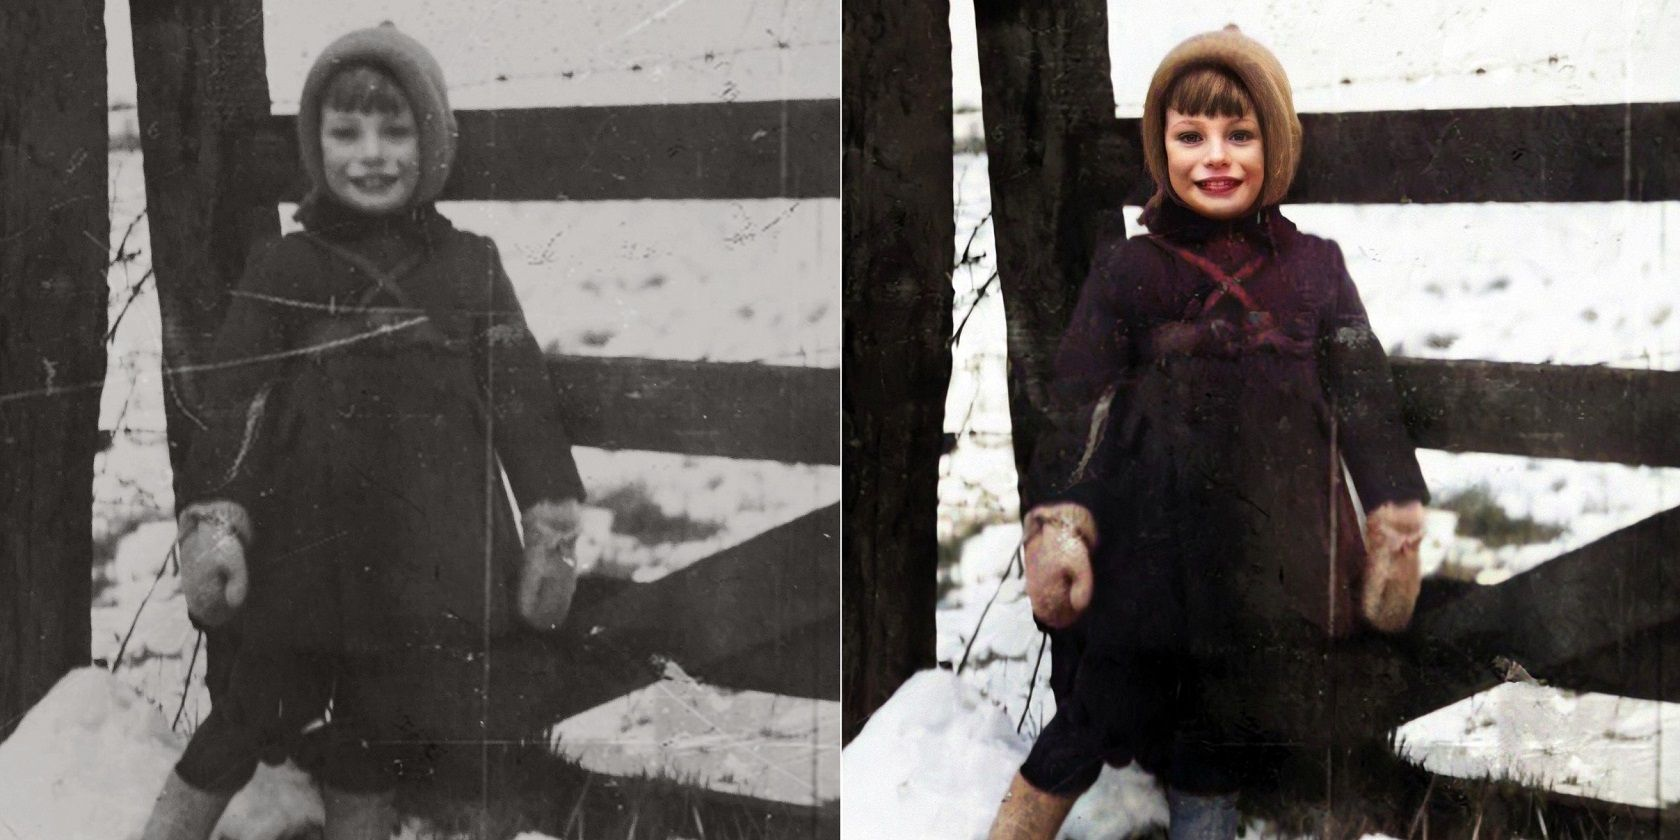 How to Enhance and Repair Old Photos With MyHeritage